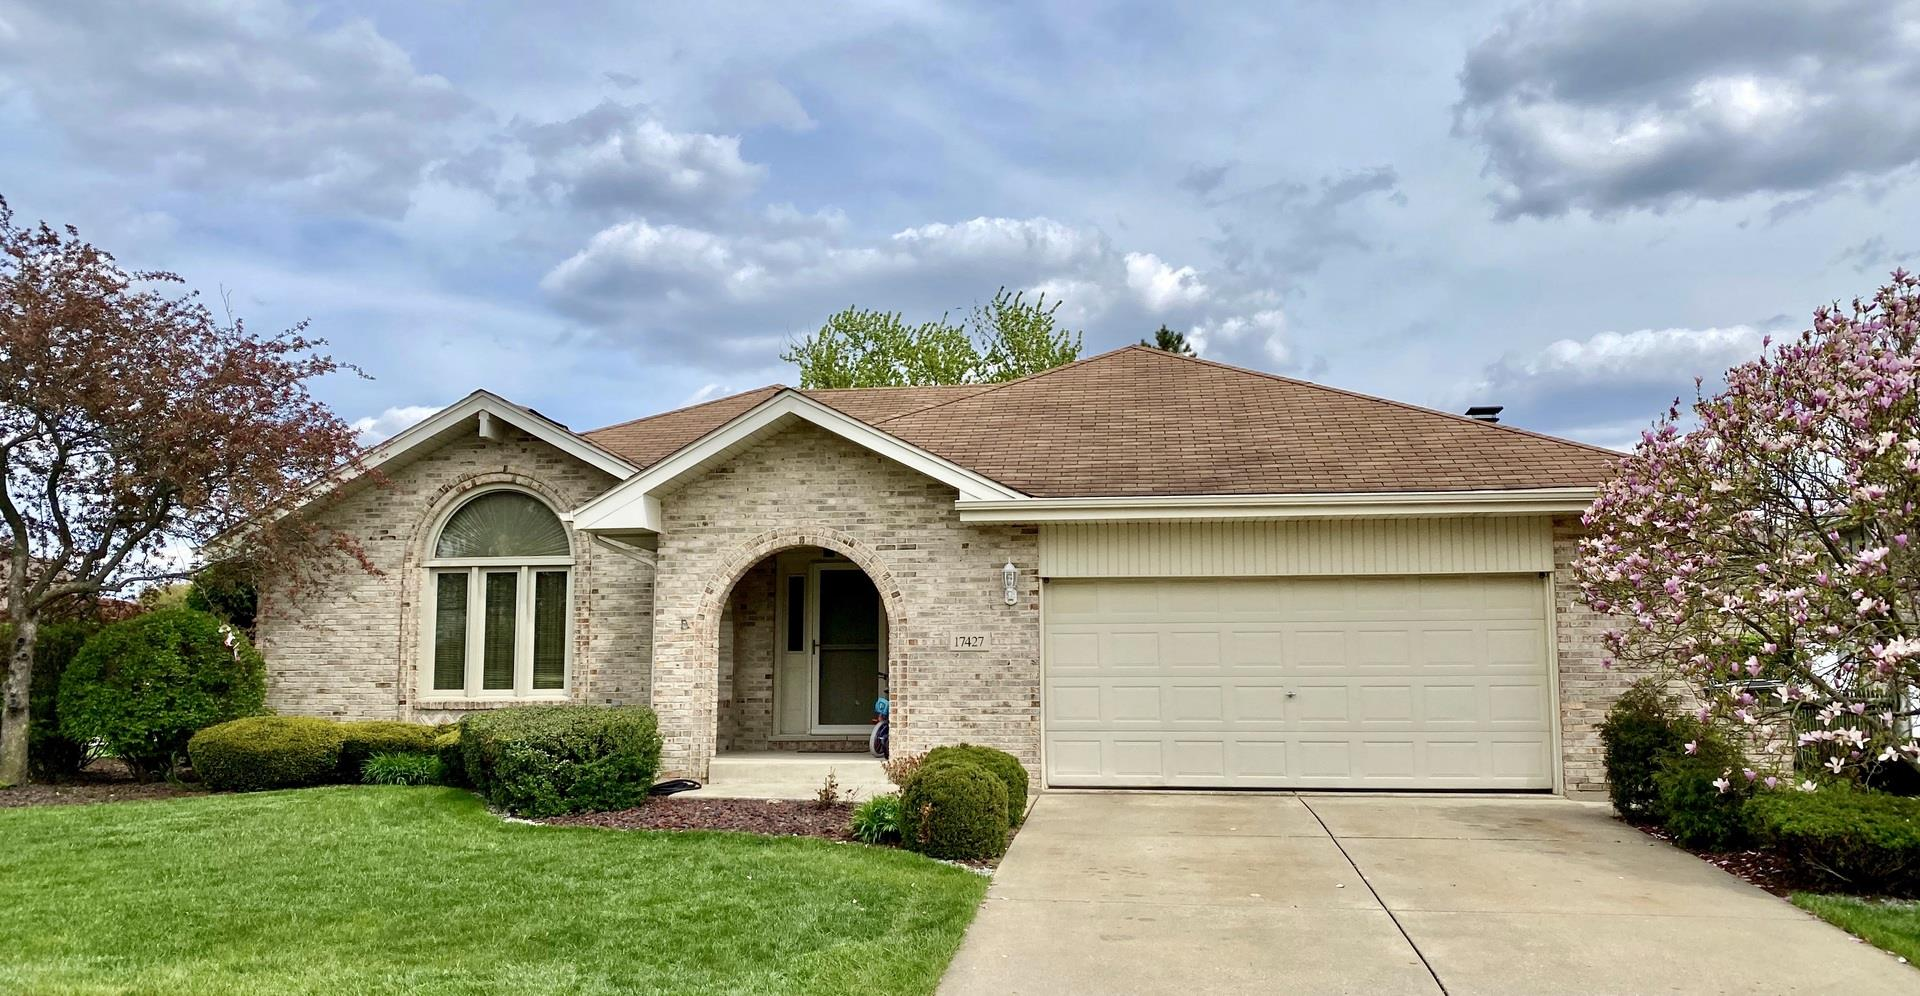 17427 Harvest Hill Drive, Orland Park, IL 60467 - #: 10731799